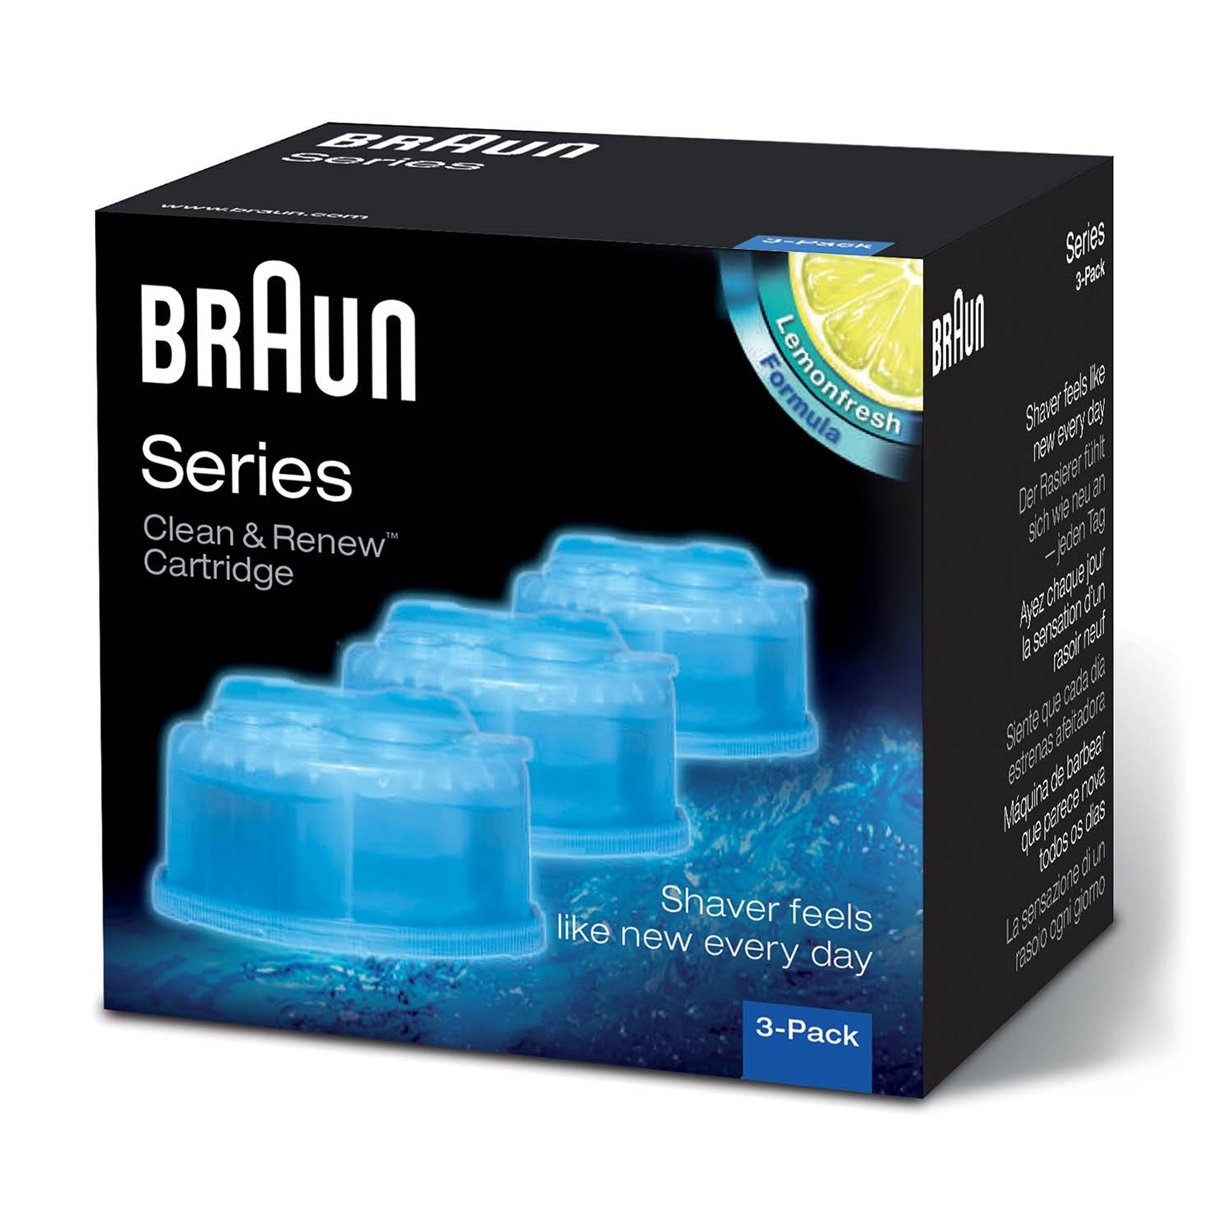 Braun Clean and Renew 3 Pack PROCTER & GAMBLE CONSUMER 382355 B0021GGEE2